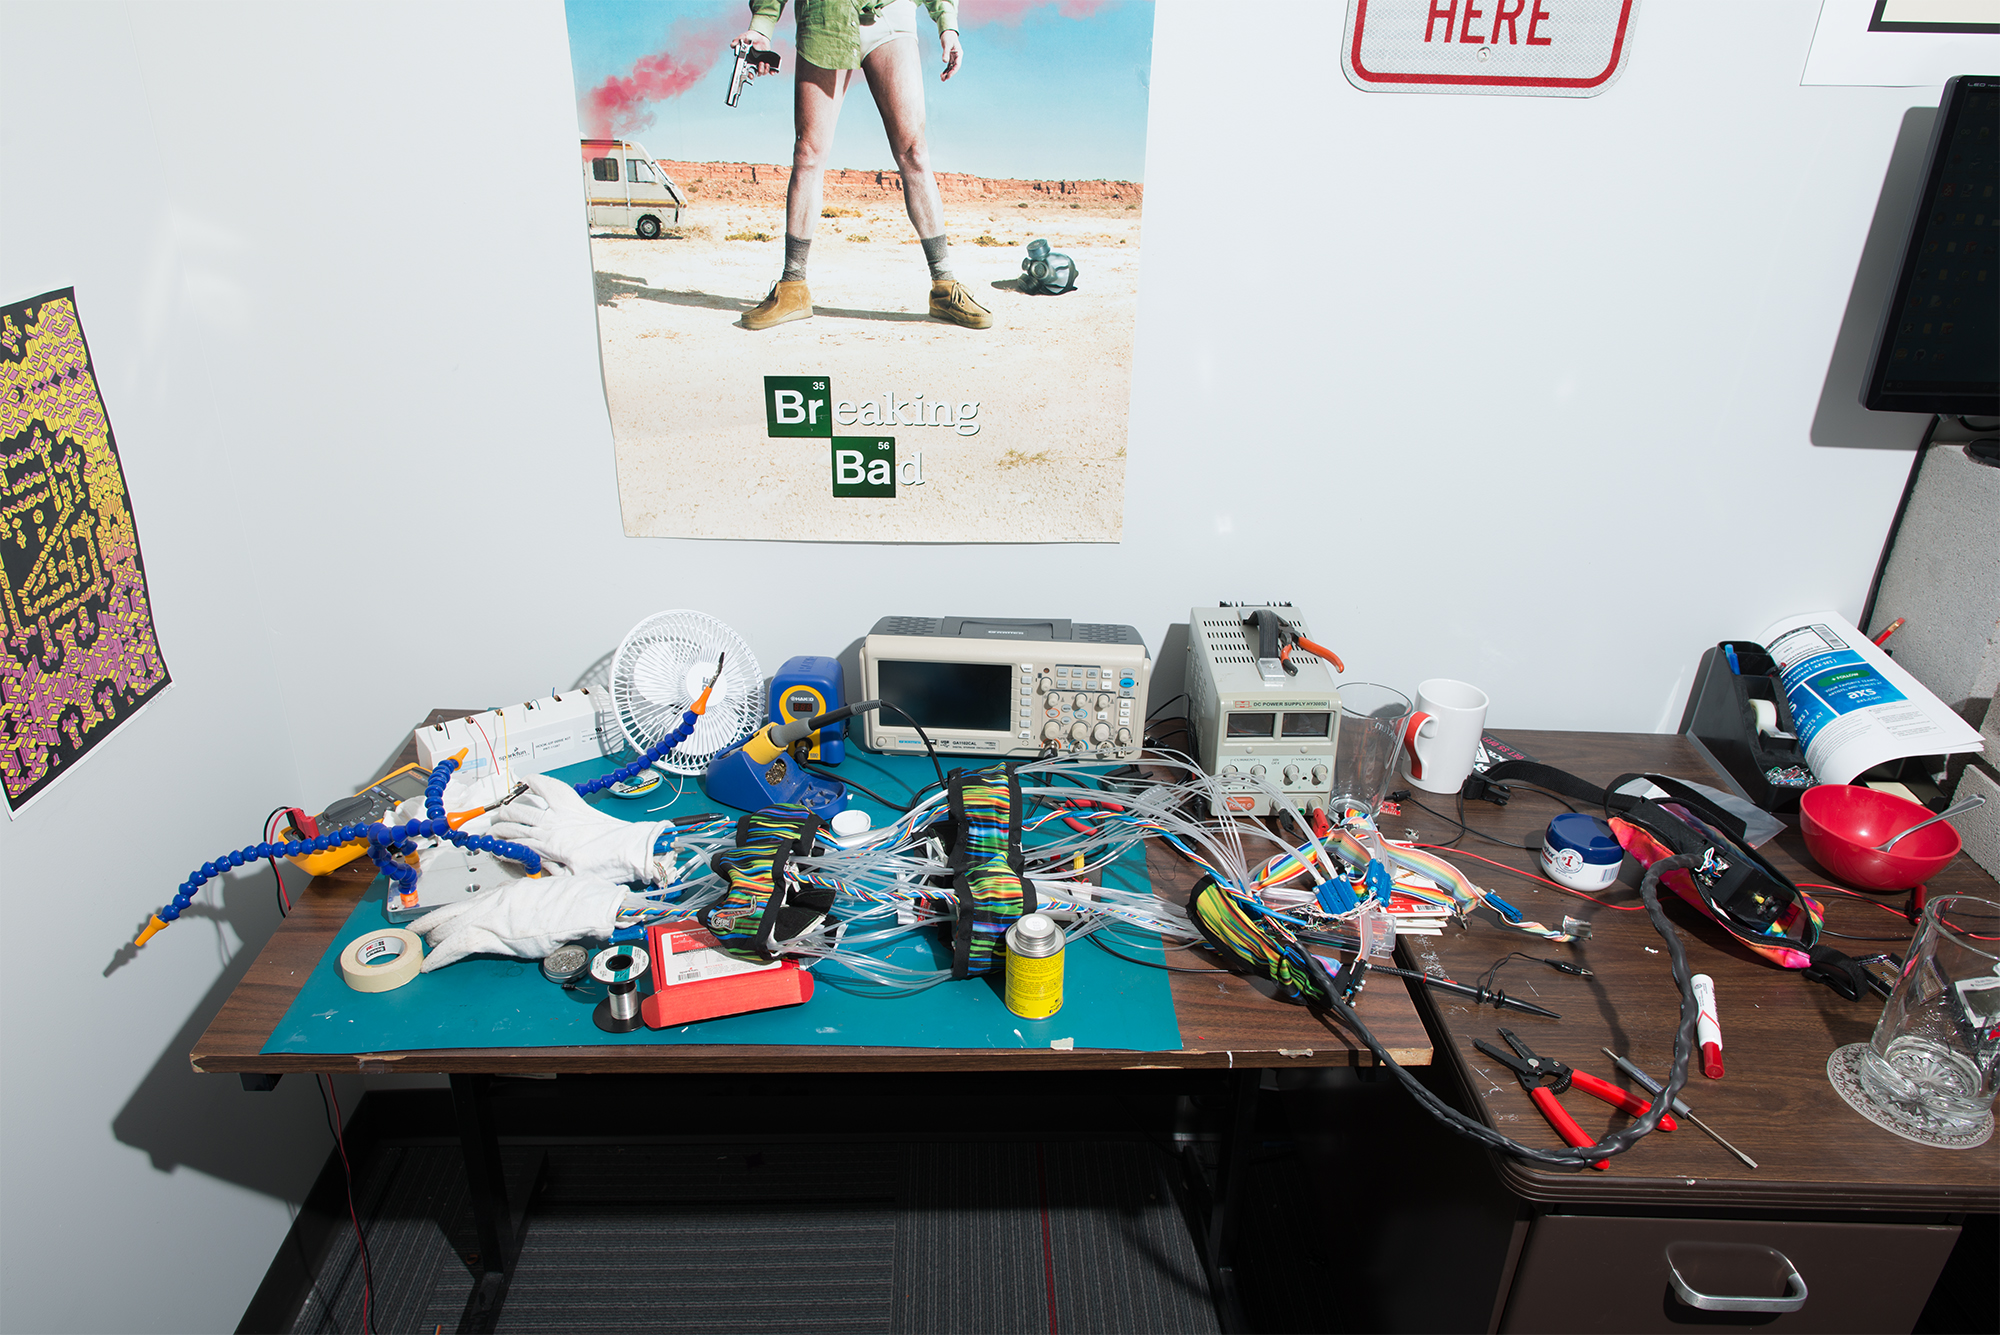 photos of engineer's workbench with hook-up wire dispenser